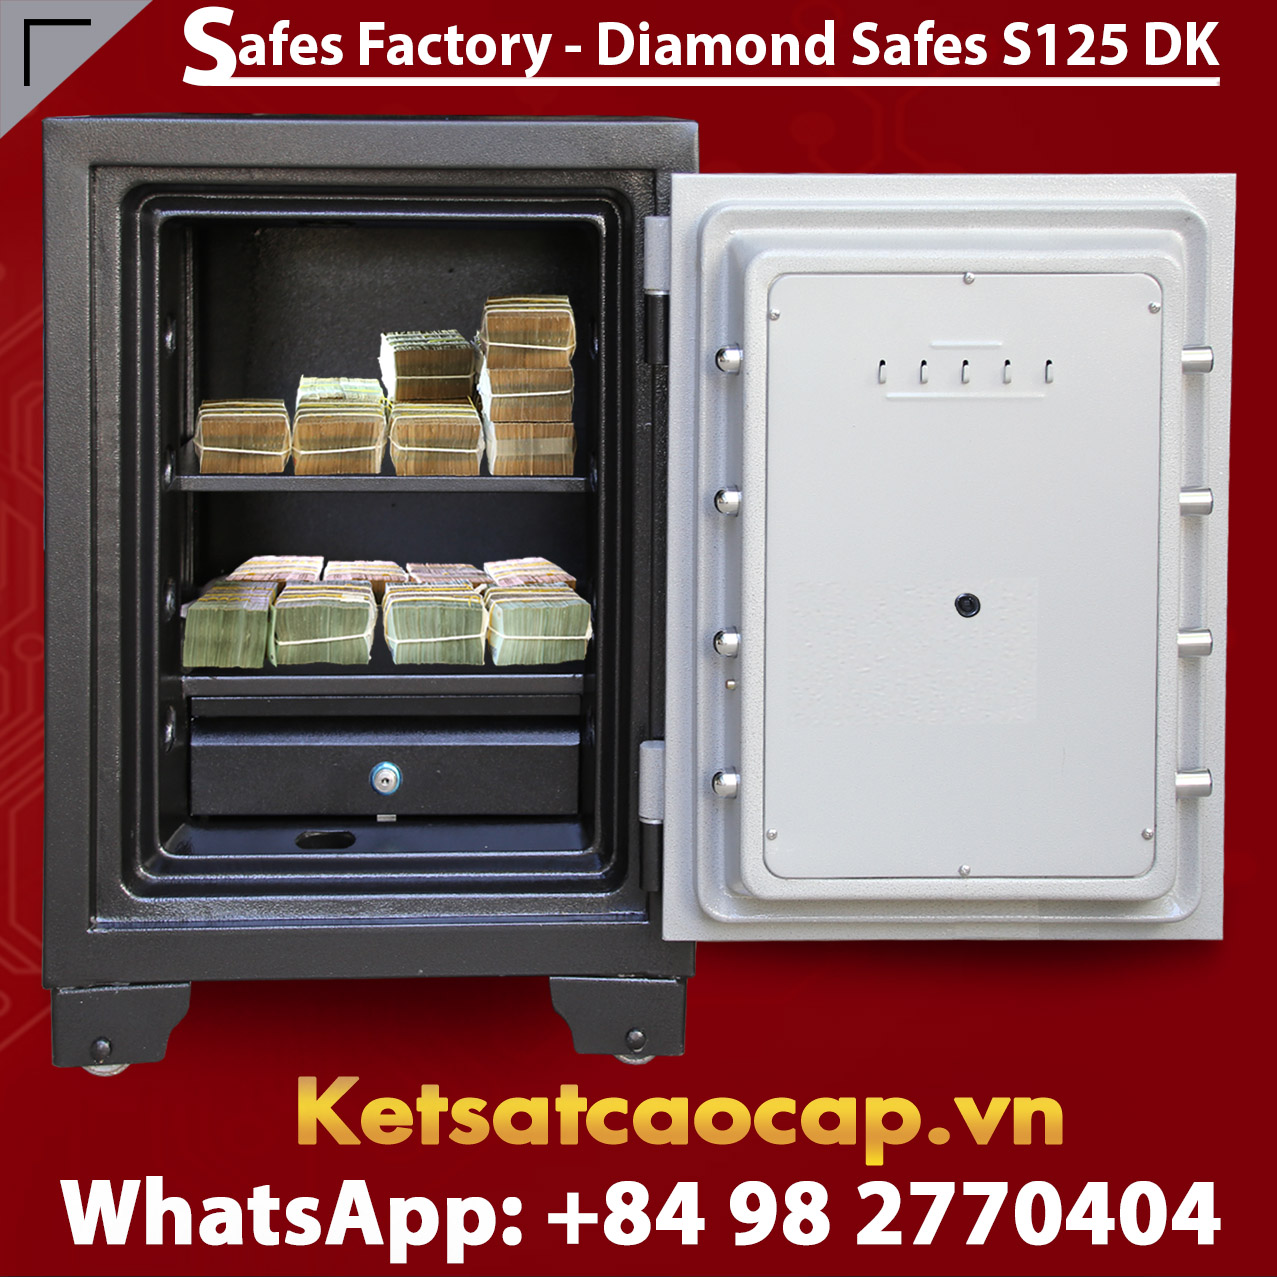 Diamond Safe KS125 DK Black